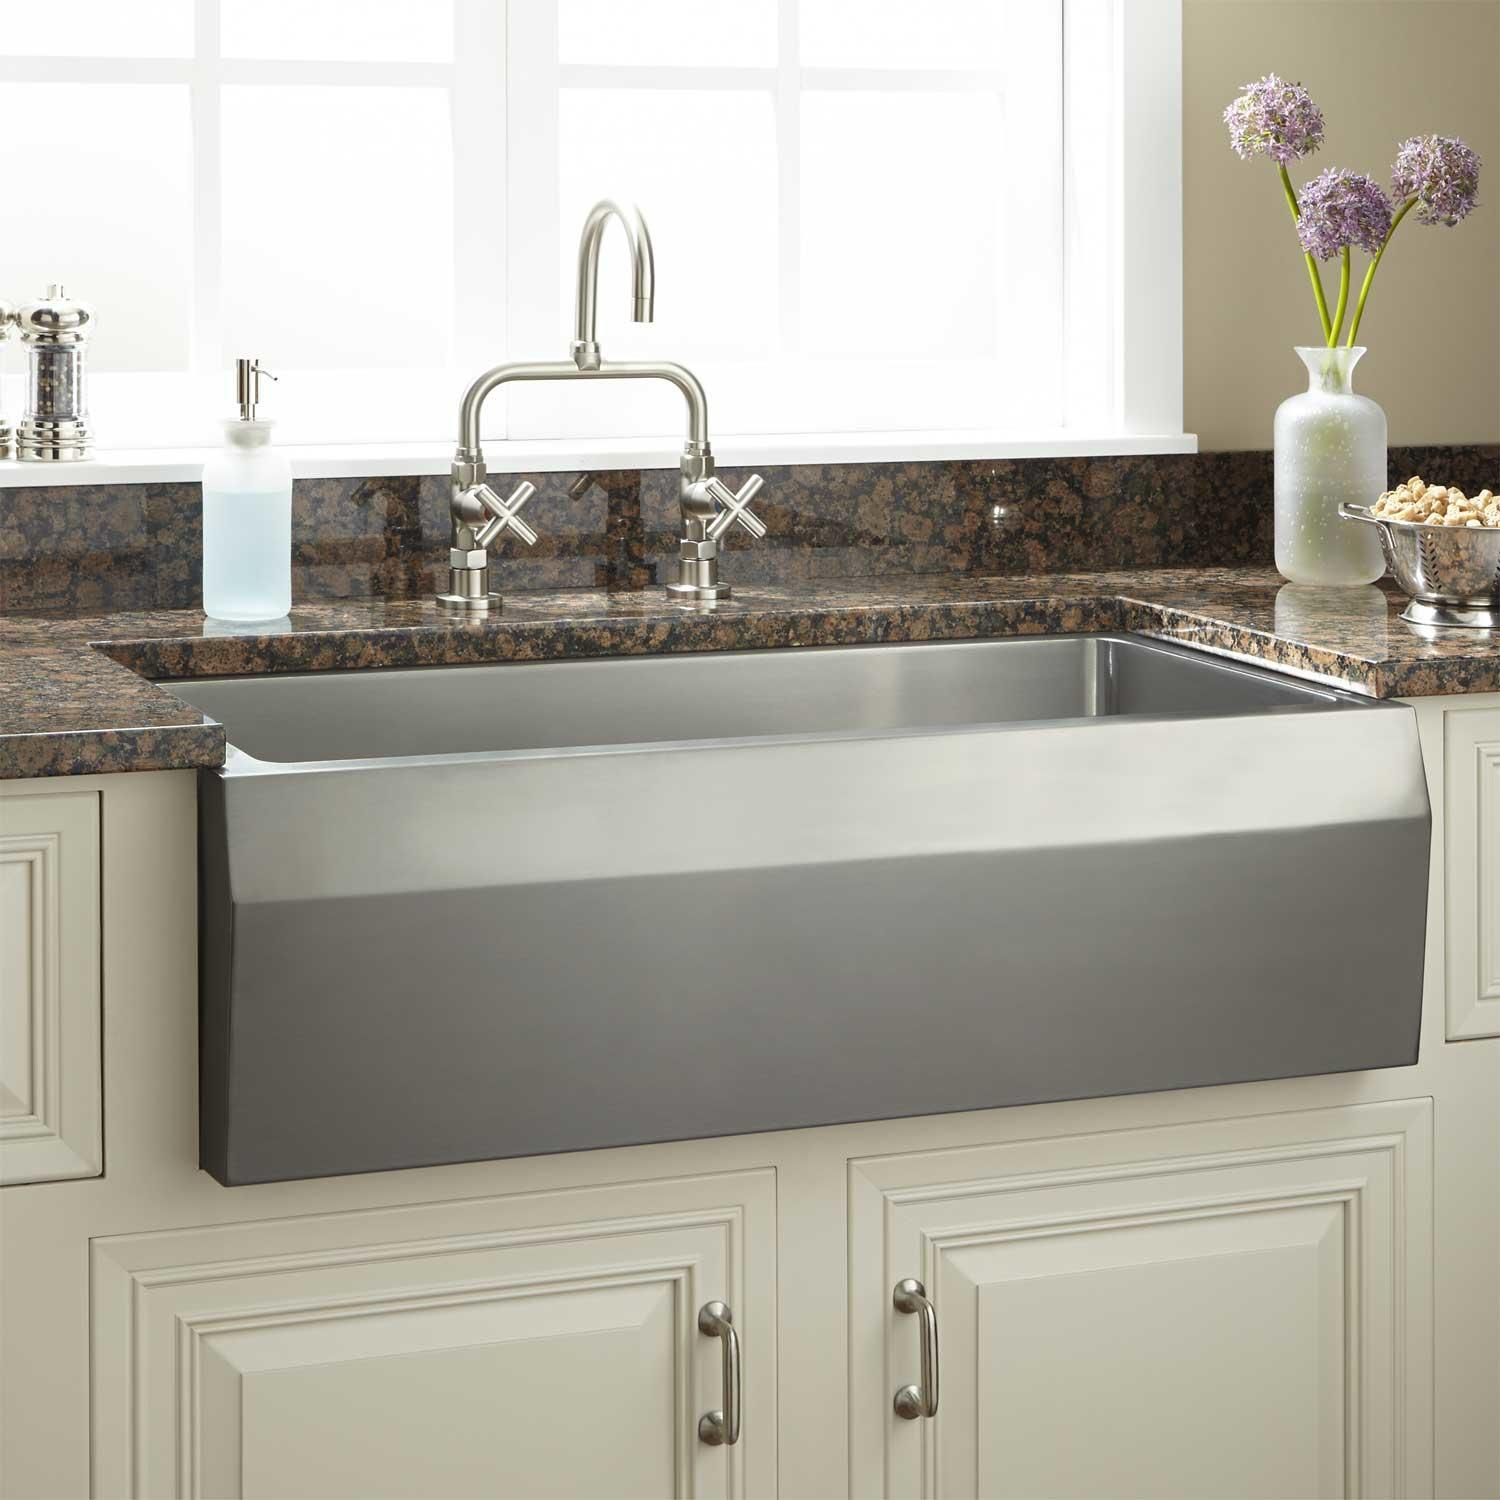 33 Kingsley Stainless Steel Farmhouse Sink In Beveled Apron